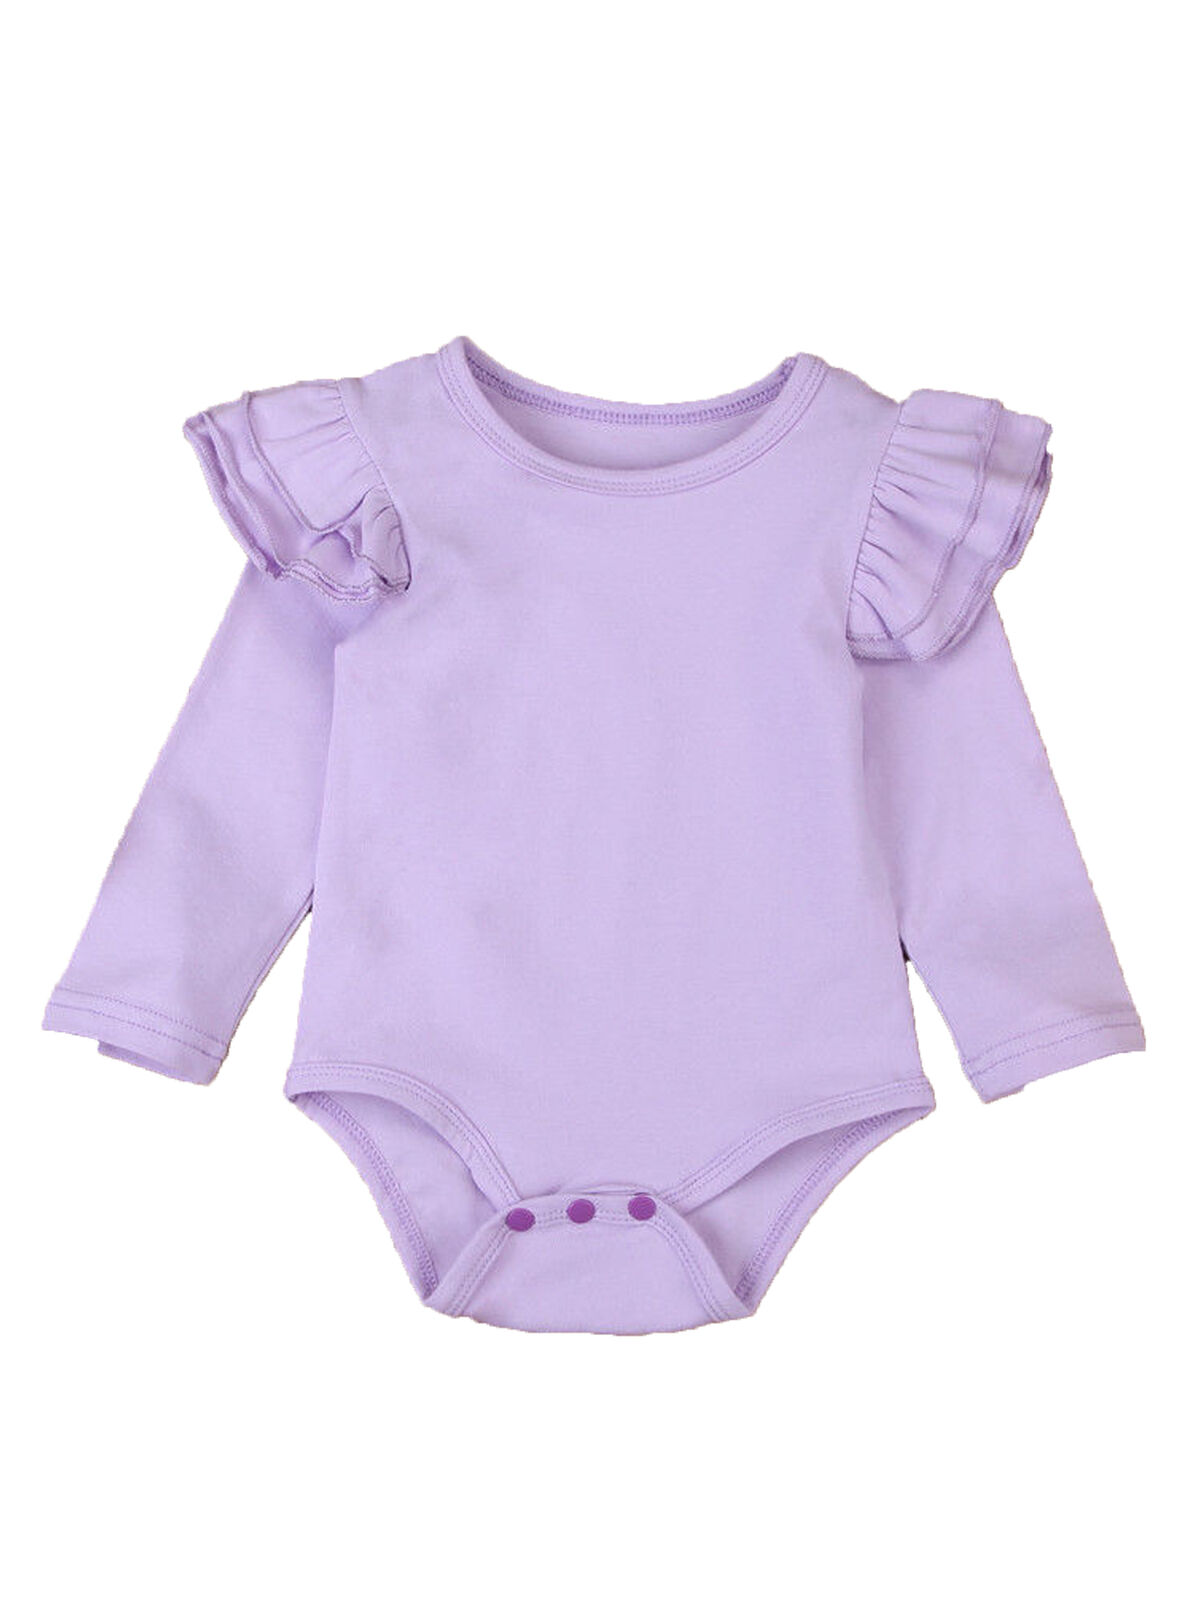 Baby Romper Sunsuit,Onsie 12-18 Months All in One Bubble Suit Size Large